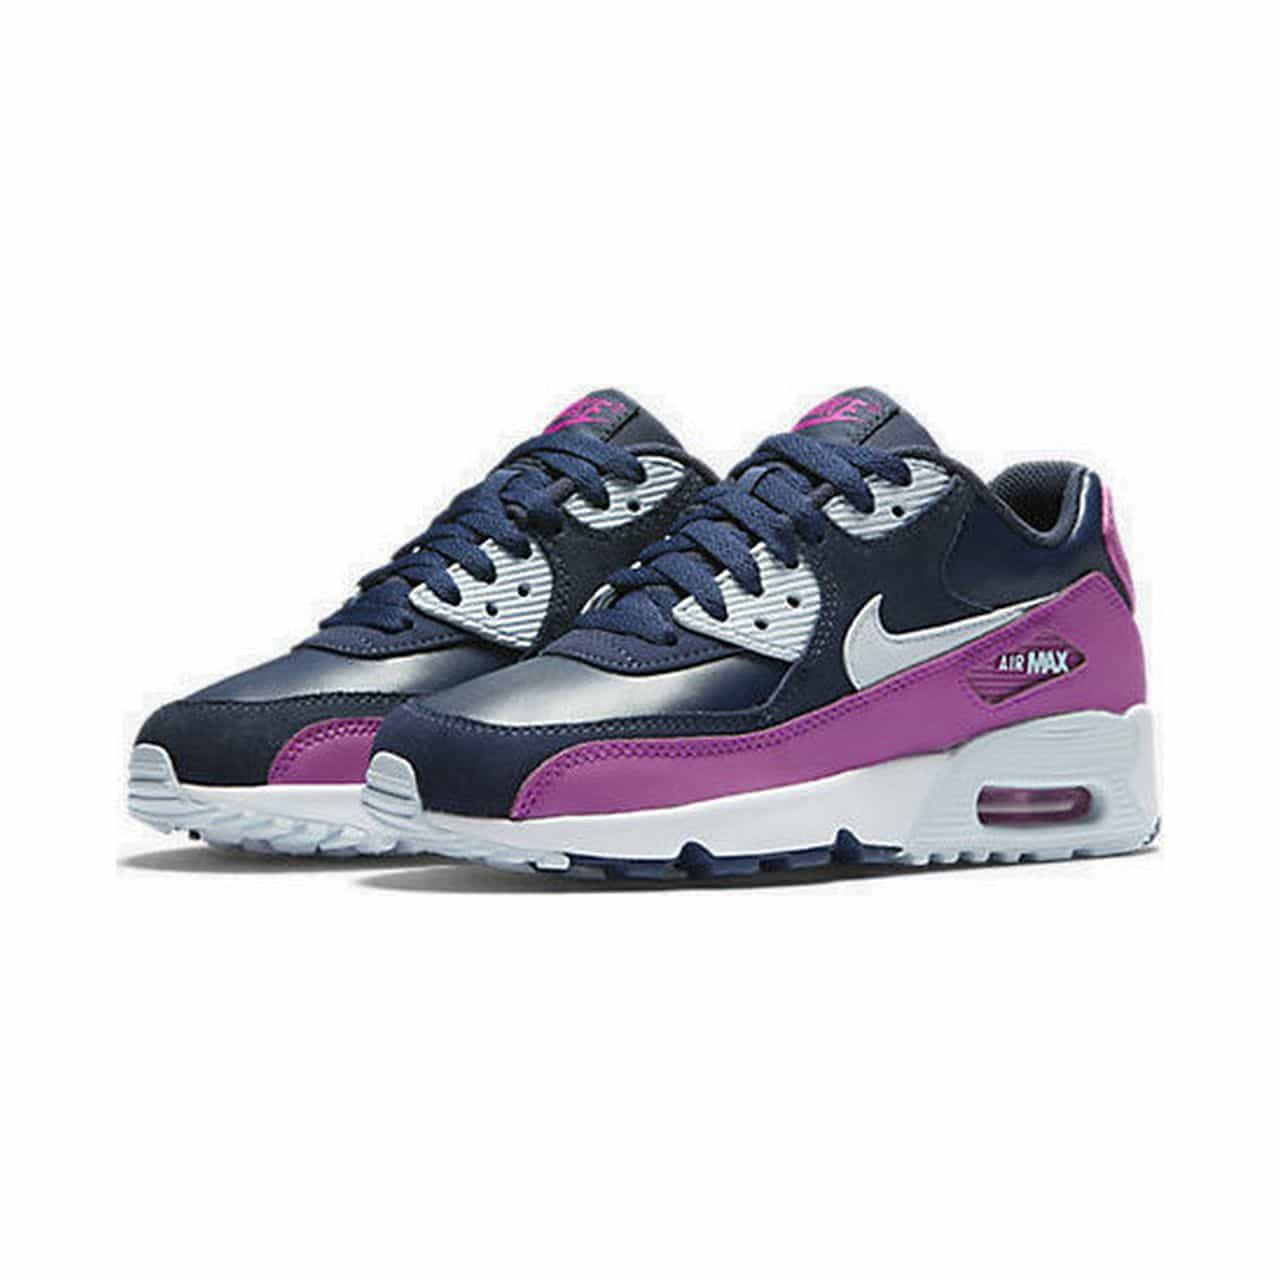 ADIDASI ORIGINALI NIKE AIR MAX 90 LTR (GS) - 833376 402